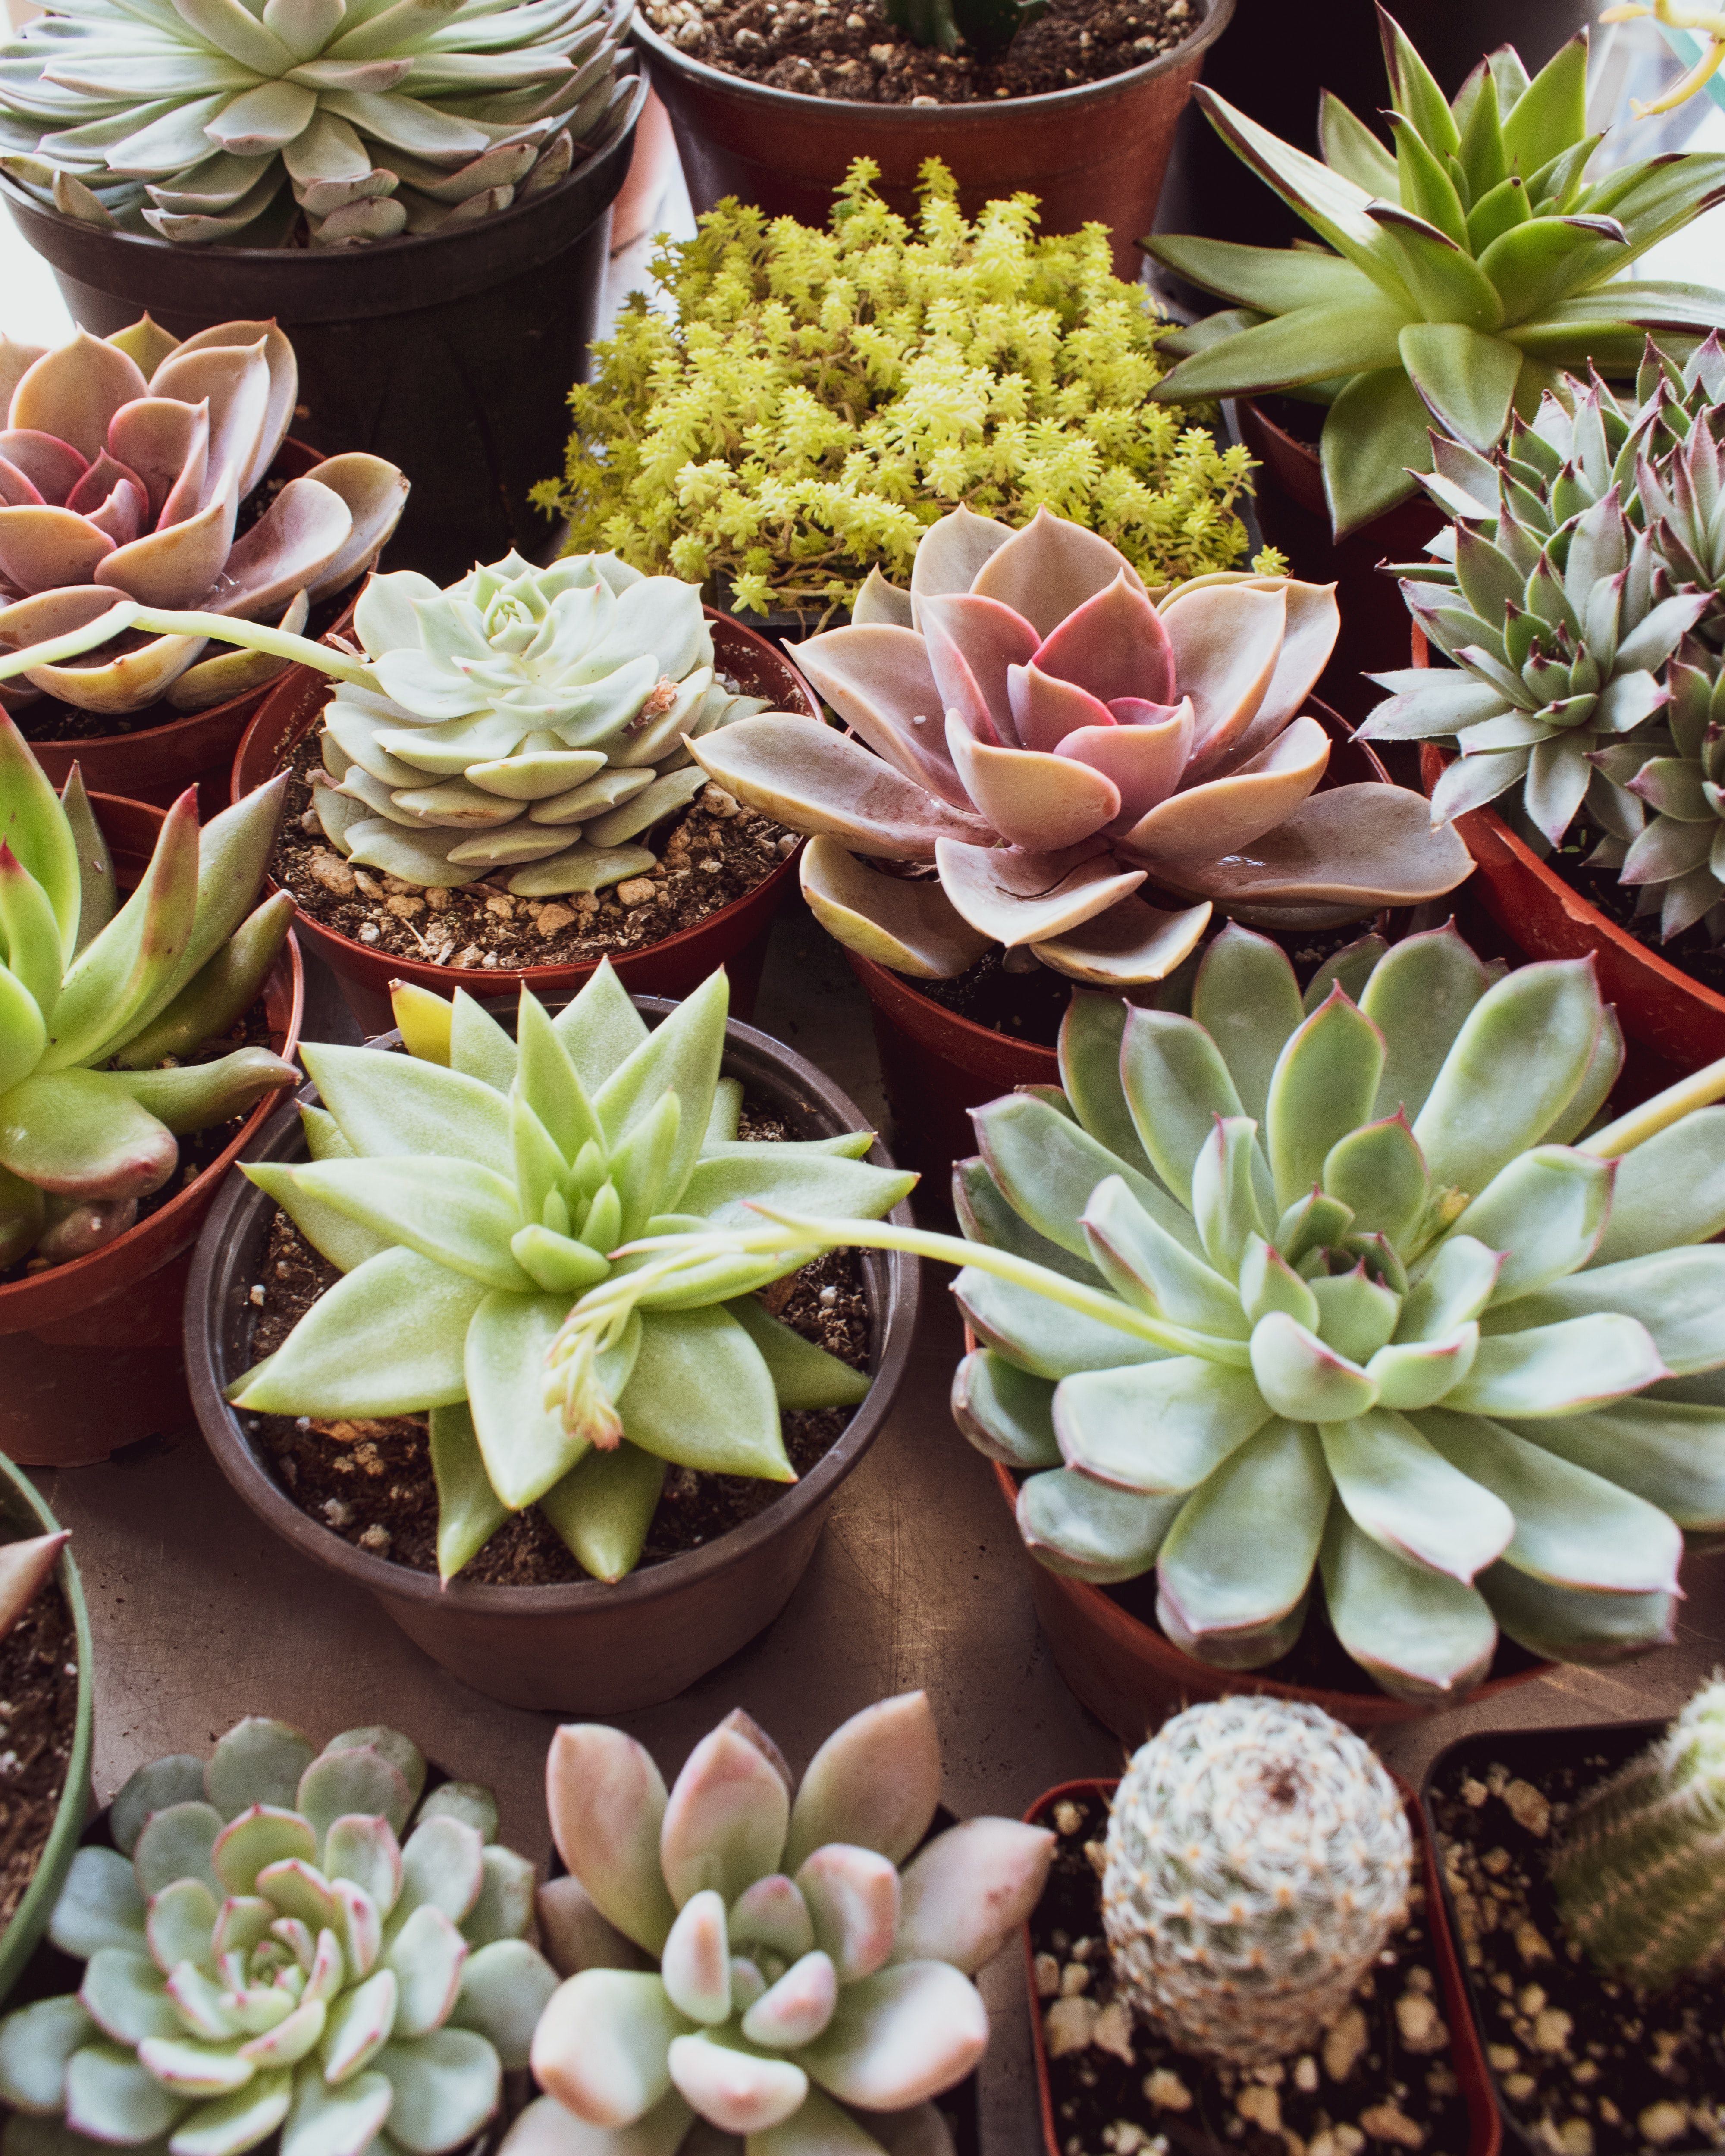 14 Colorful Houseplants That Will Brighten Up Your Home